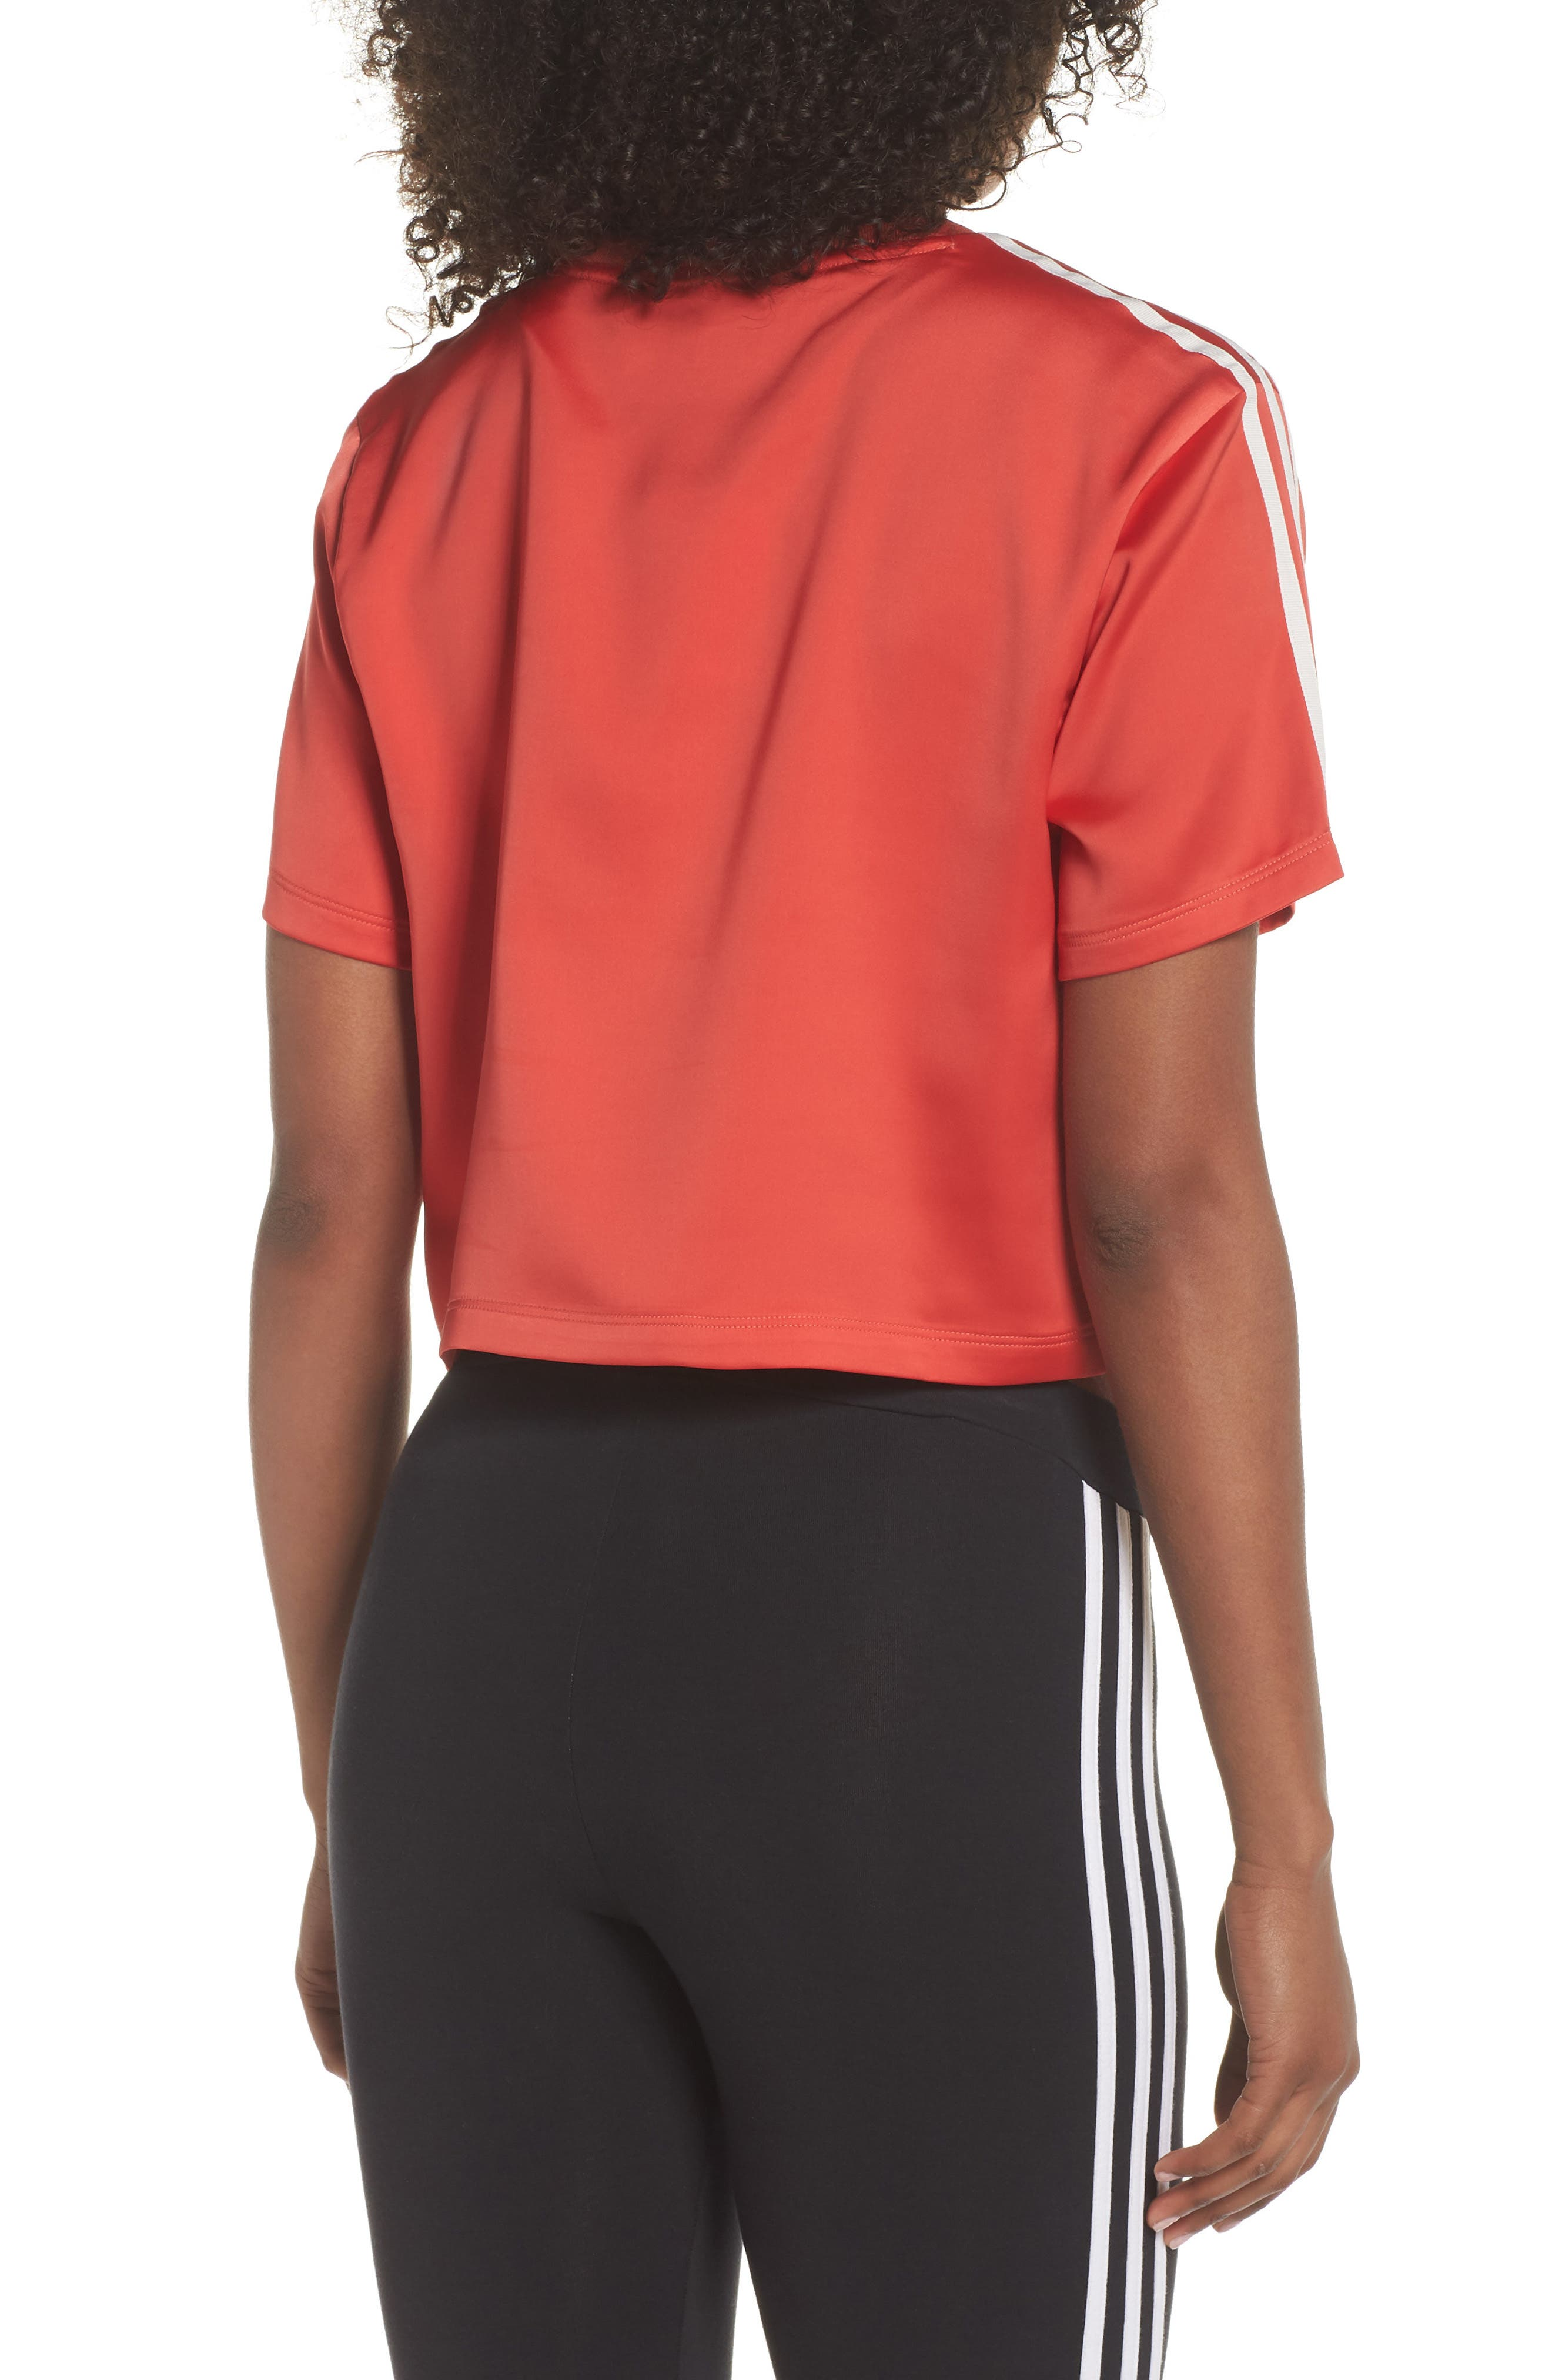 Originals Adibreak Tee,                             Alternate thumbnail 2, color,                             AMAZON RED